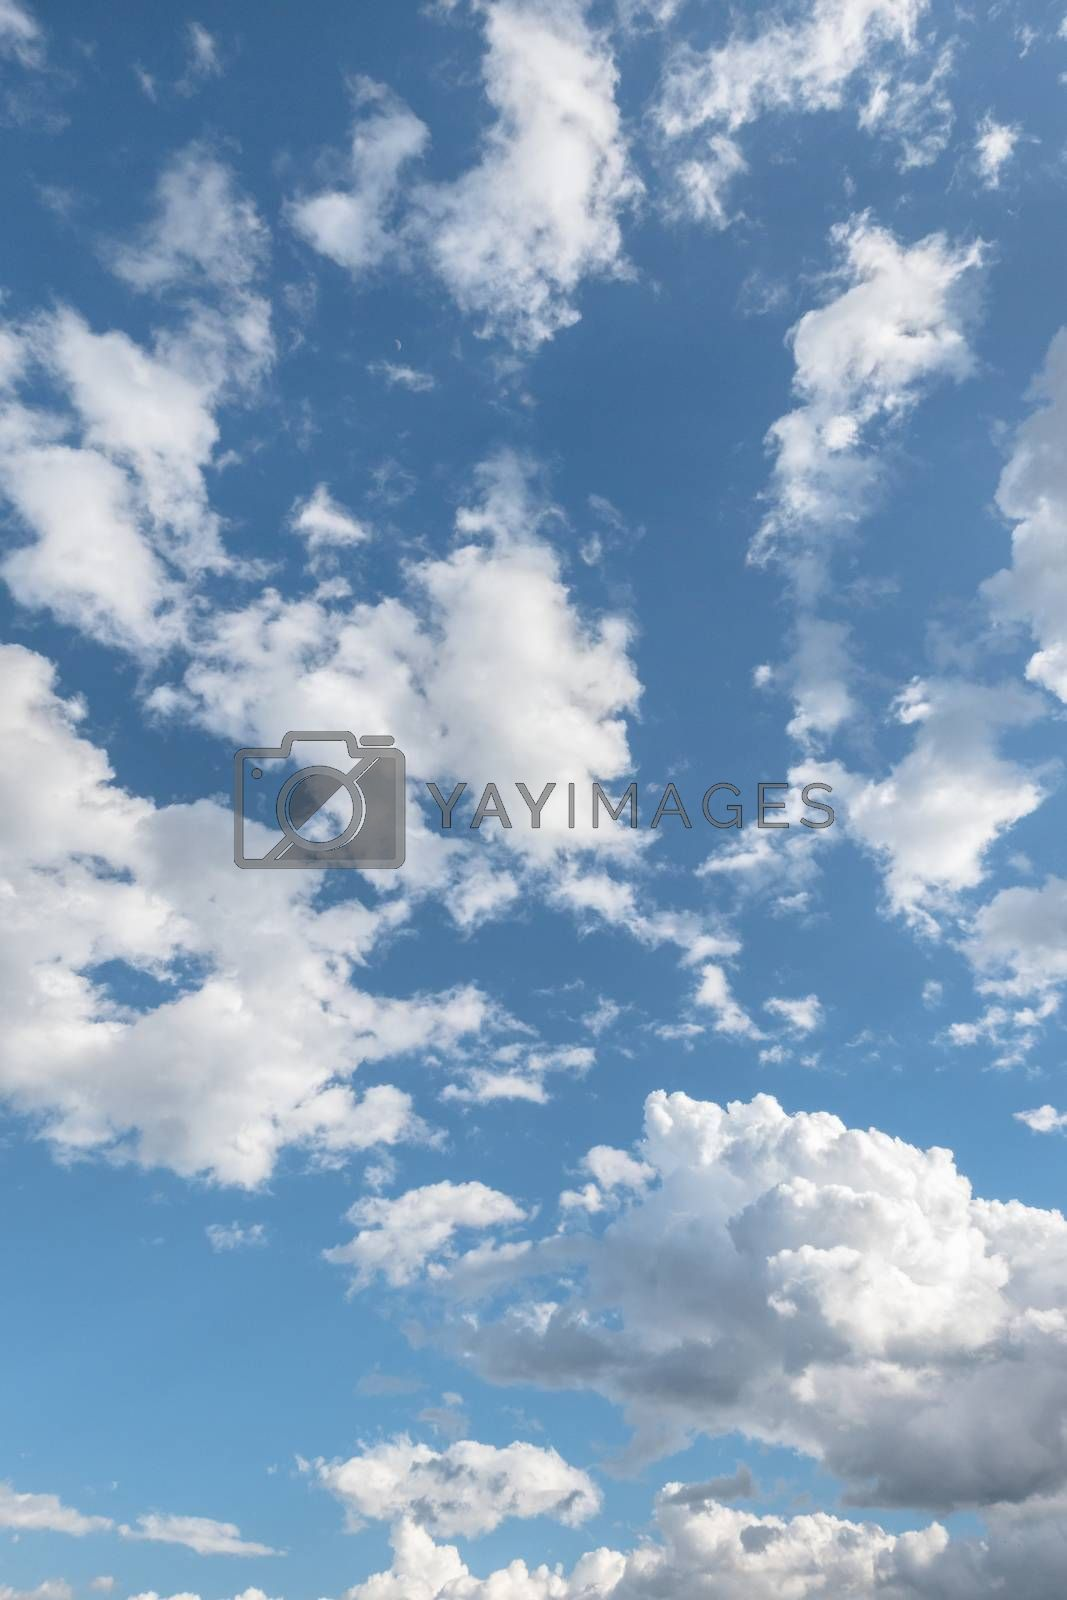 Clouds with blue sky. Ideal for textures and backgrounds.